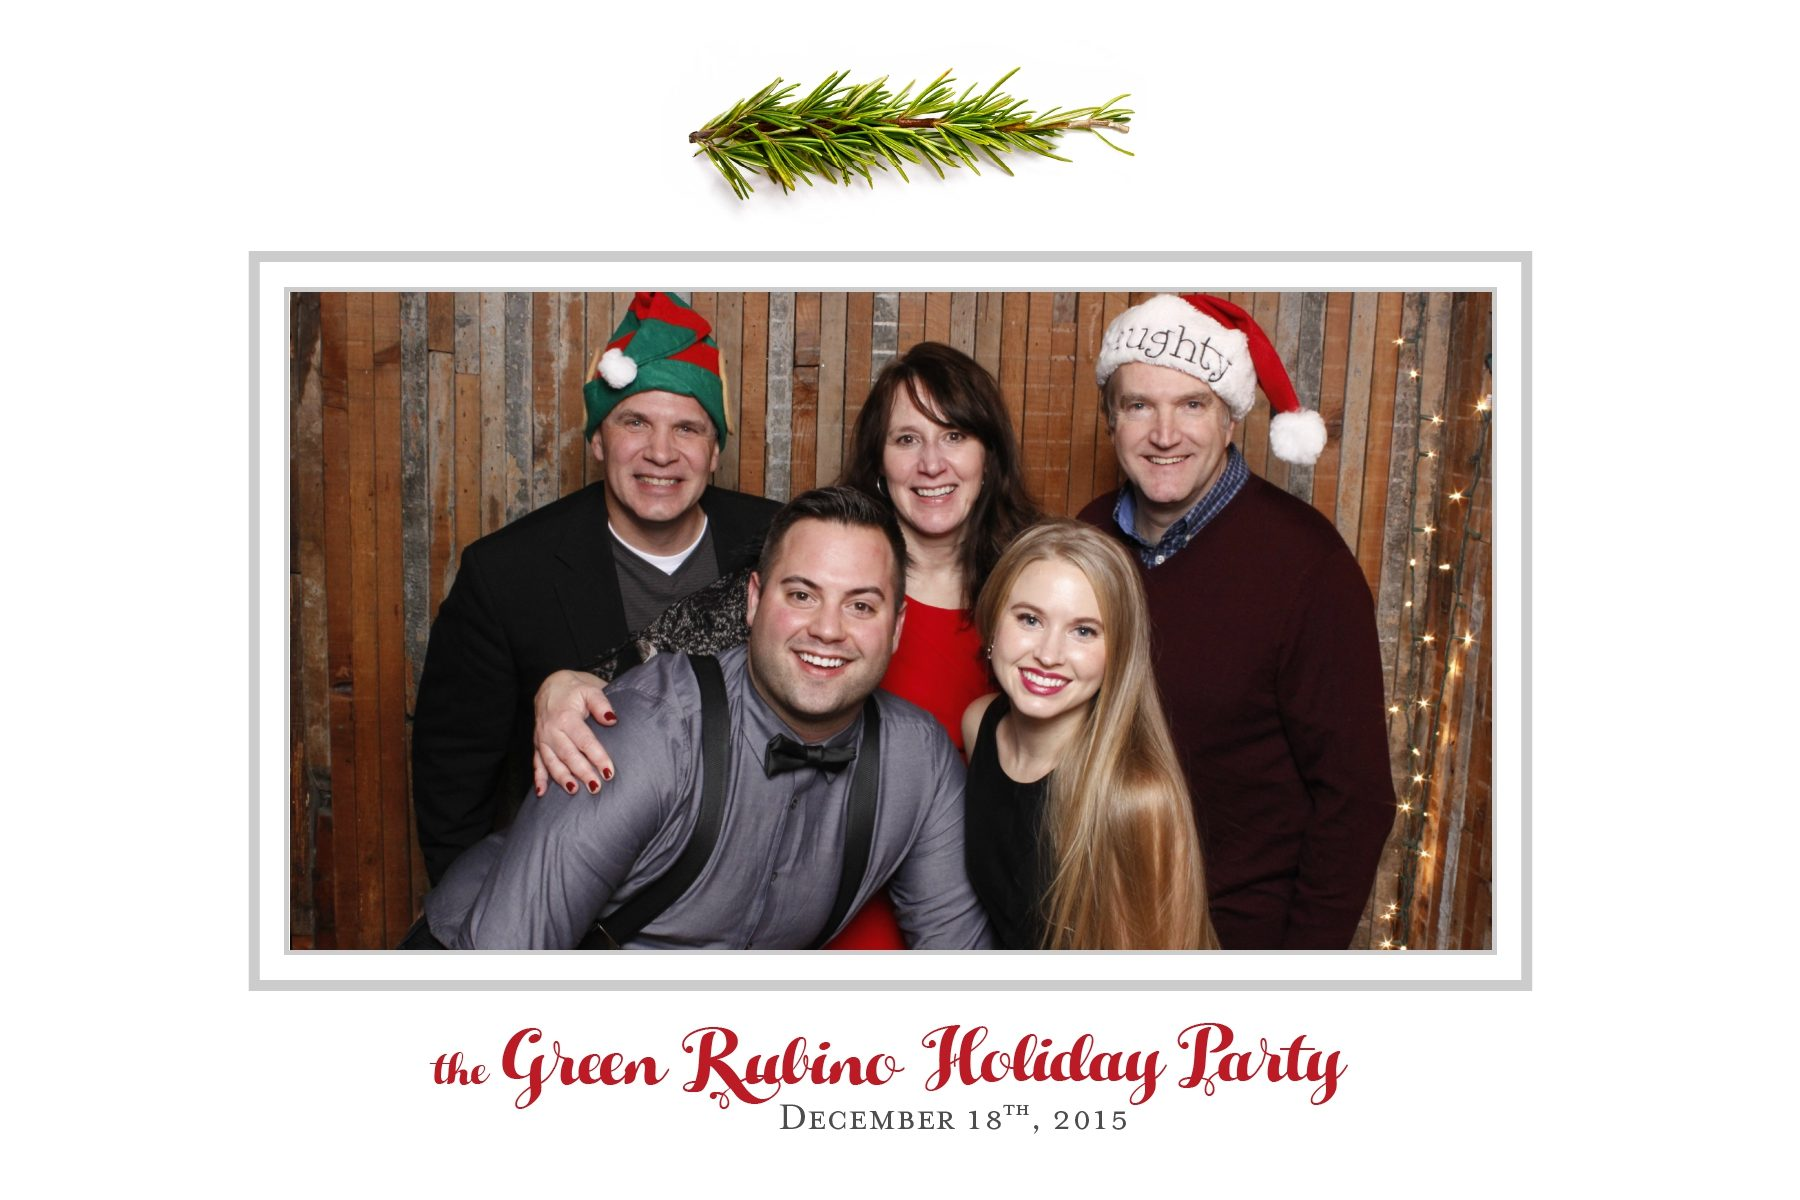 Family, friends and special guests gathered at Sole Repair in Seattle's Capitol Hill neighborhood for their annual holiday party; celebrating a great 2015 and looking forward to an exciting 2016! Seattle Photo Booth © 2015 Ari Shapiro - PartyBoothNW.com